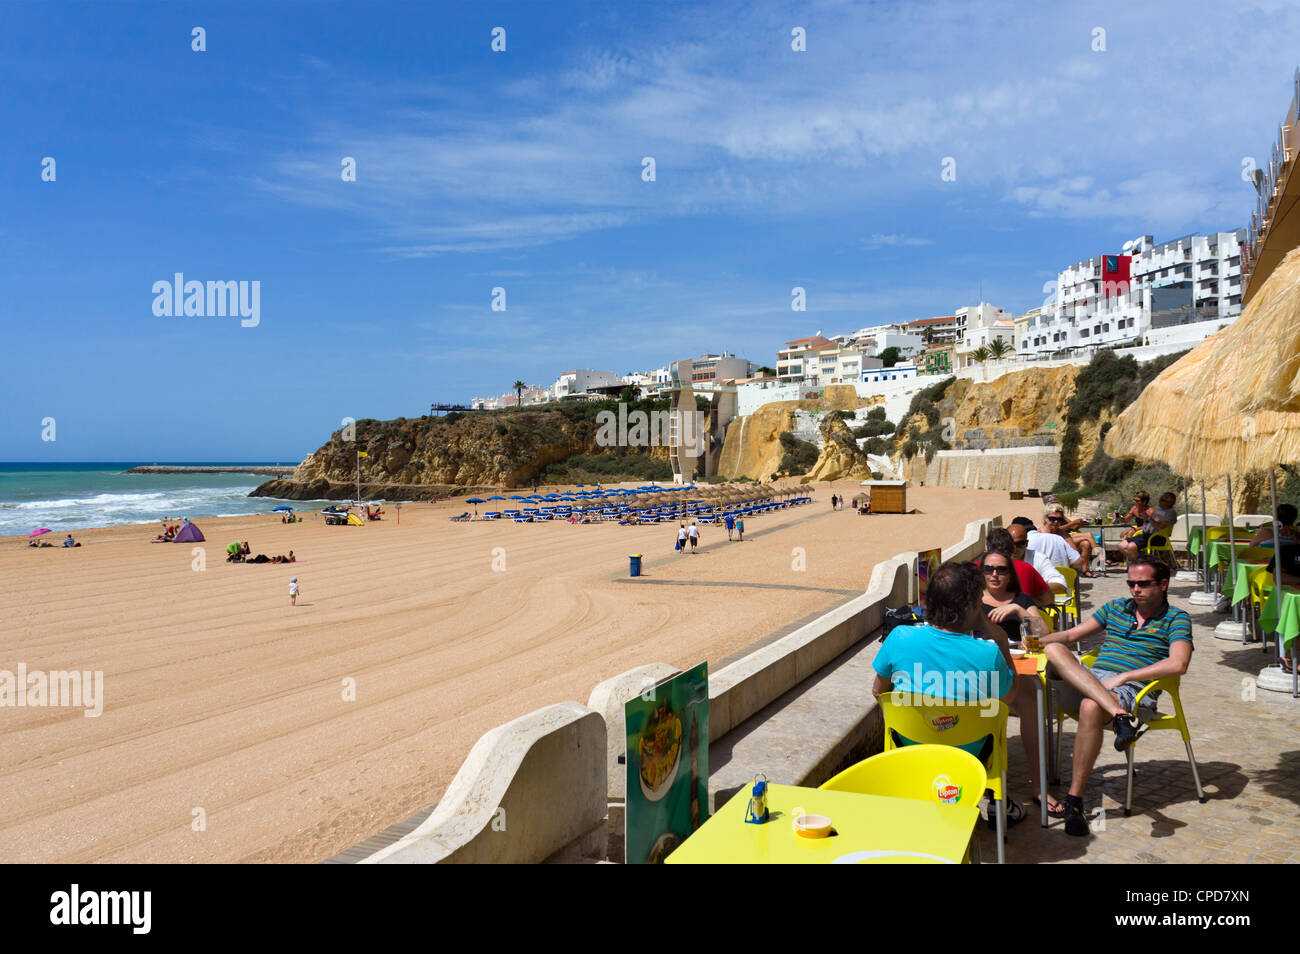 Cafe on the seafront at Praia dos Penedo beach, Albufeira, Algarve, Portugal - Stock Image